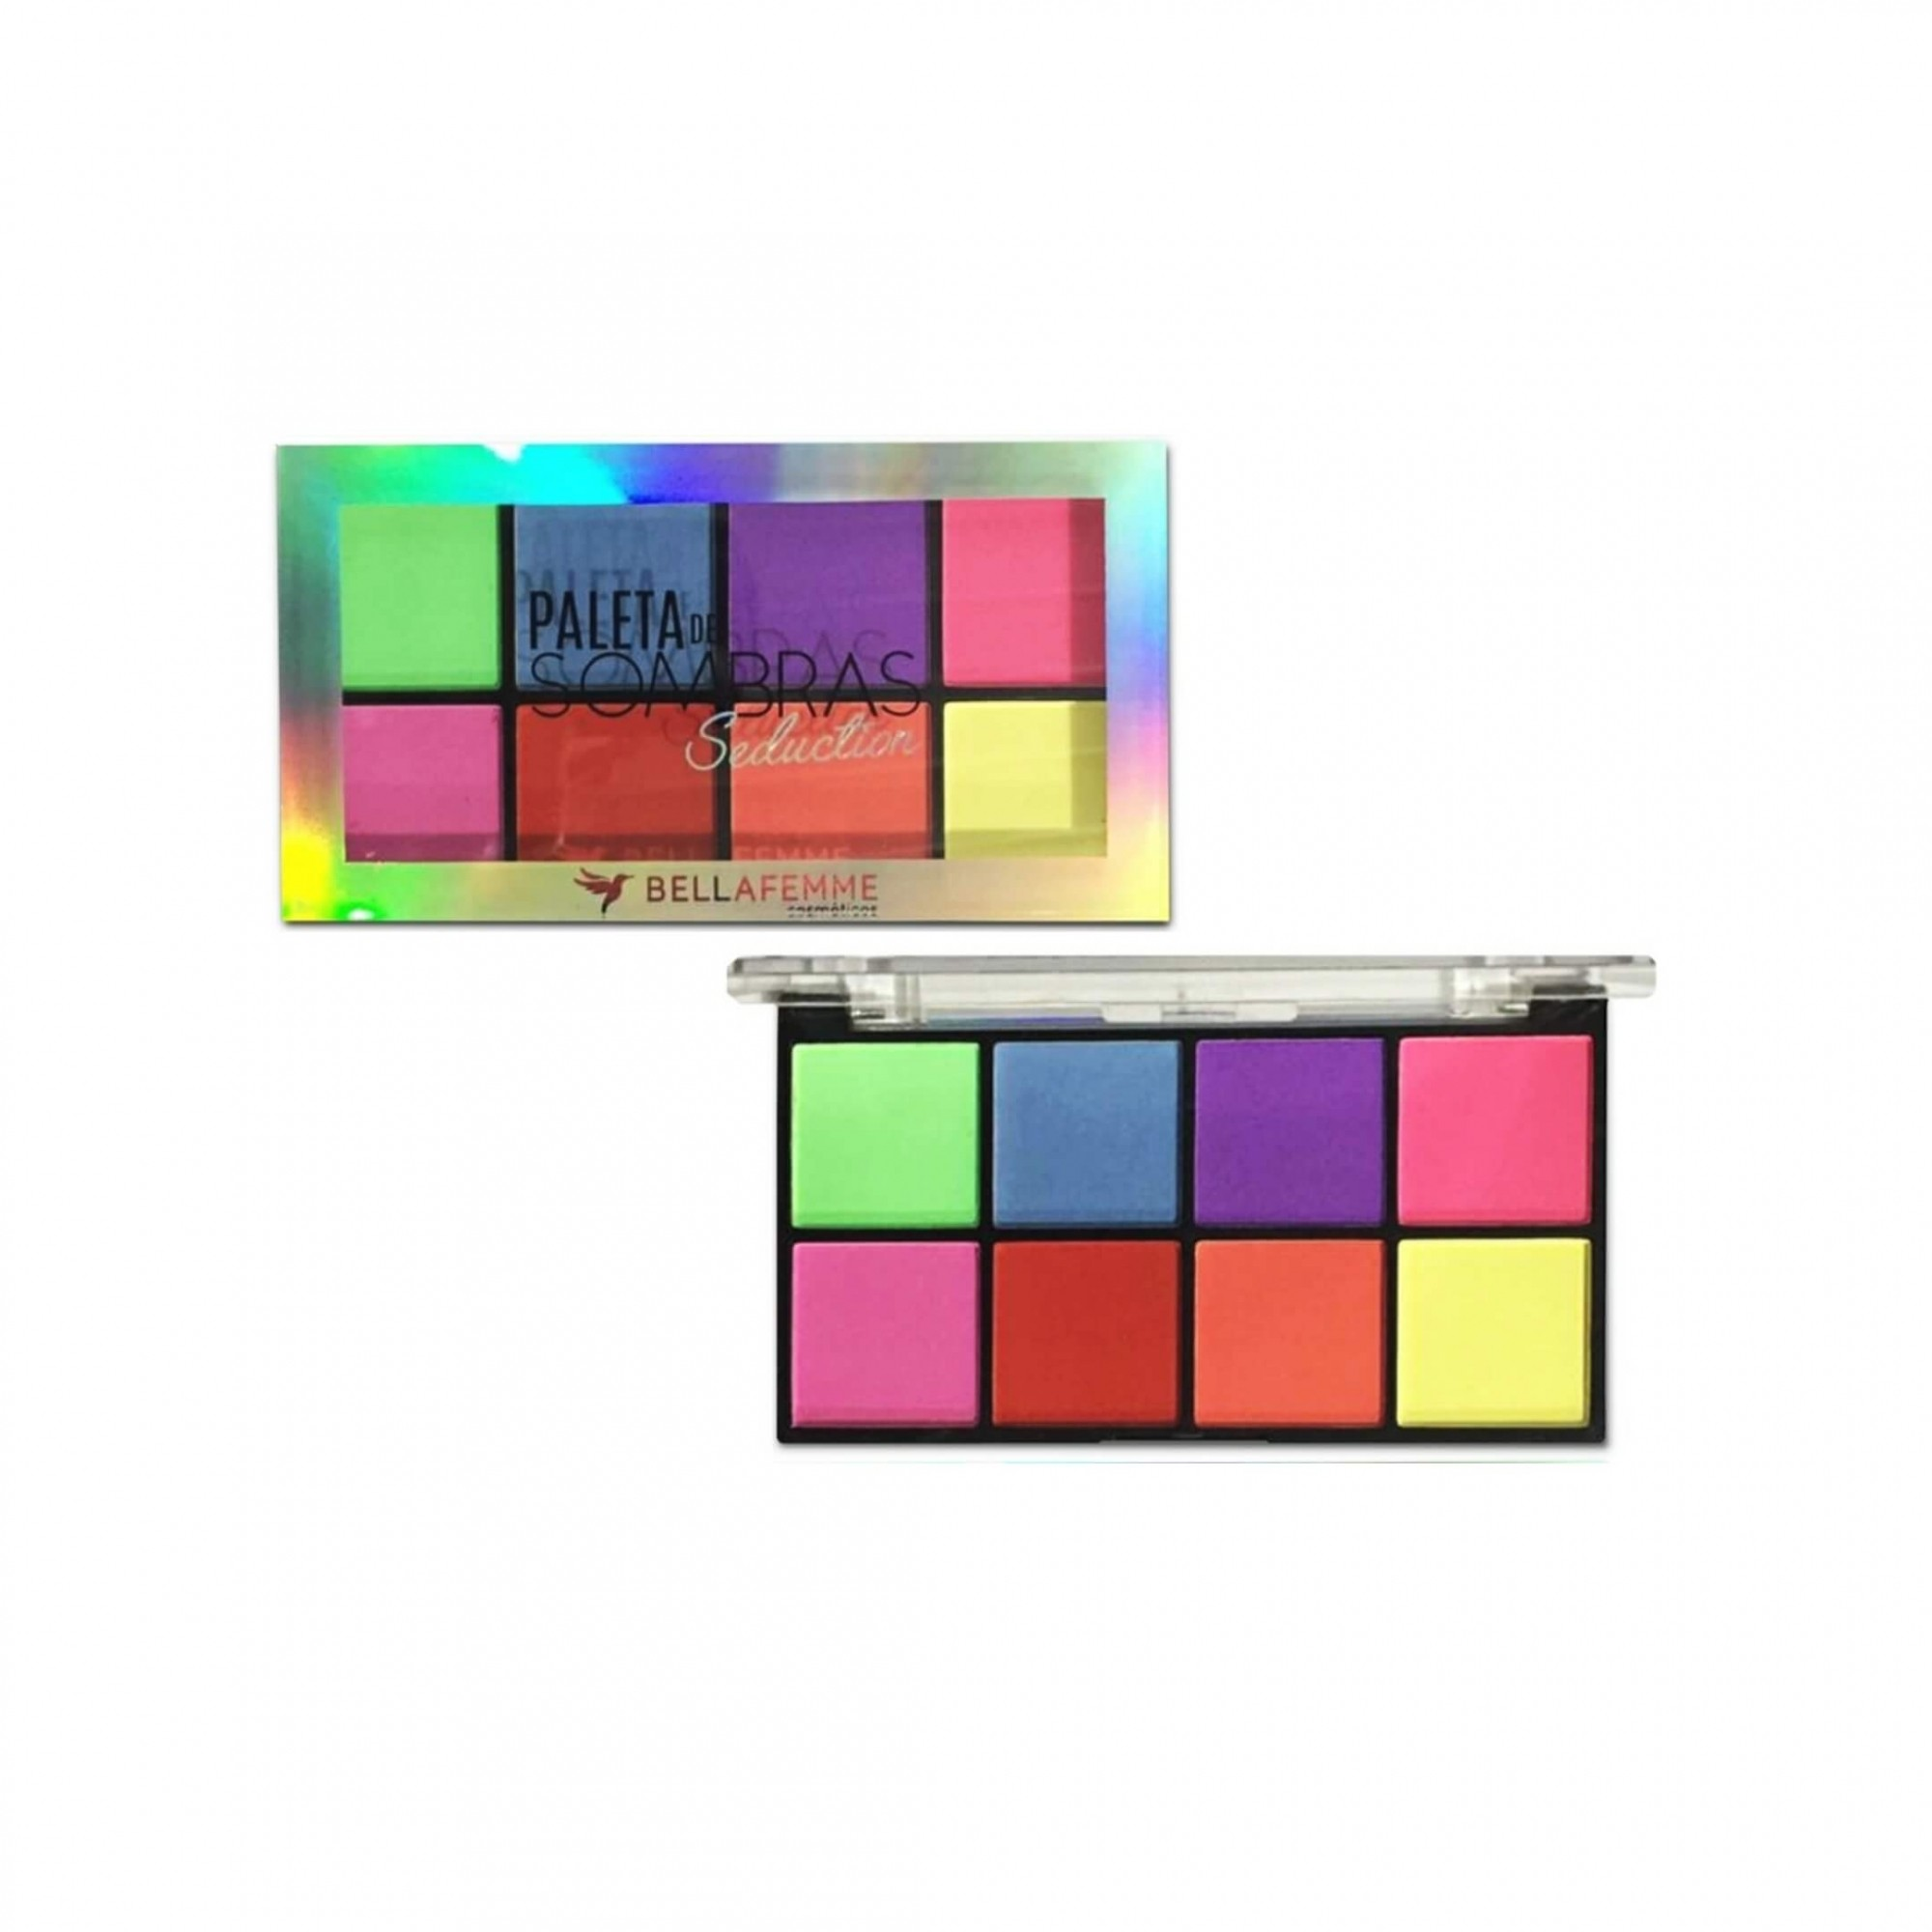 Paleta de sombras Seduction Bella Femme